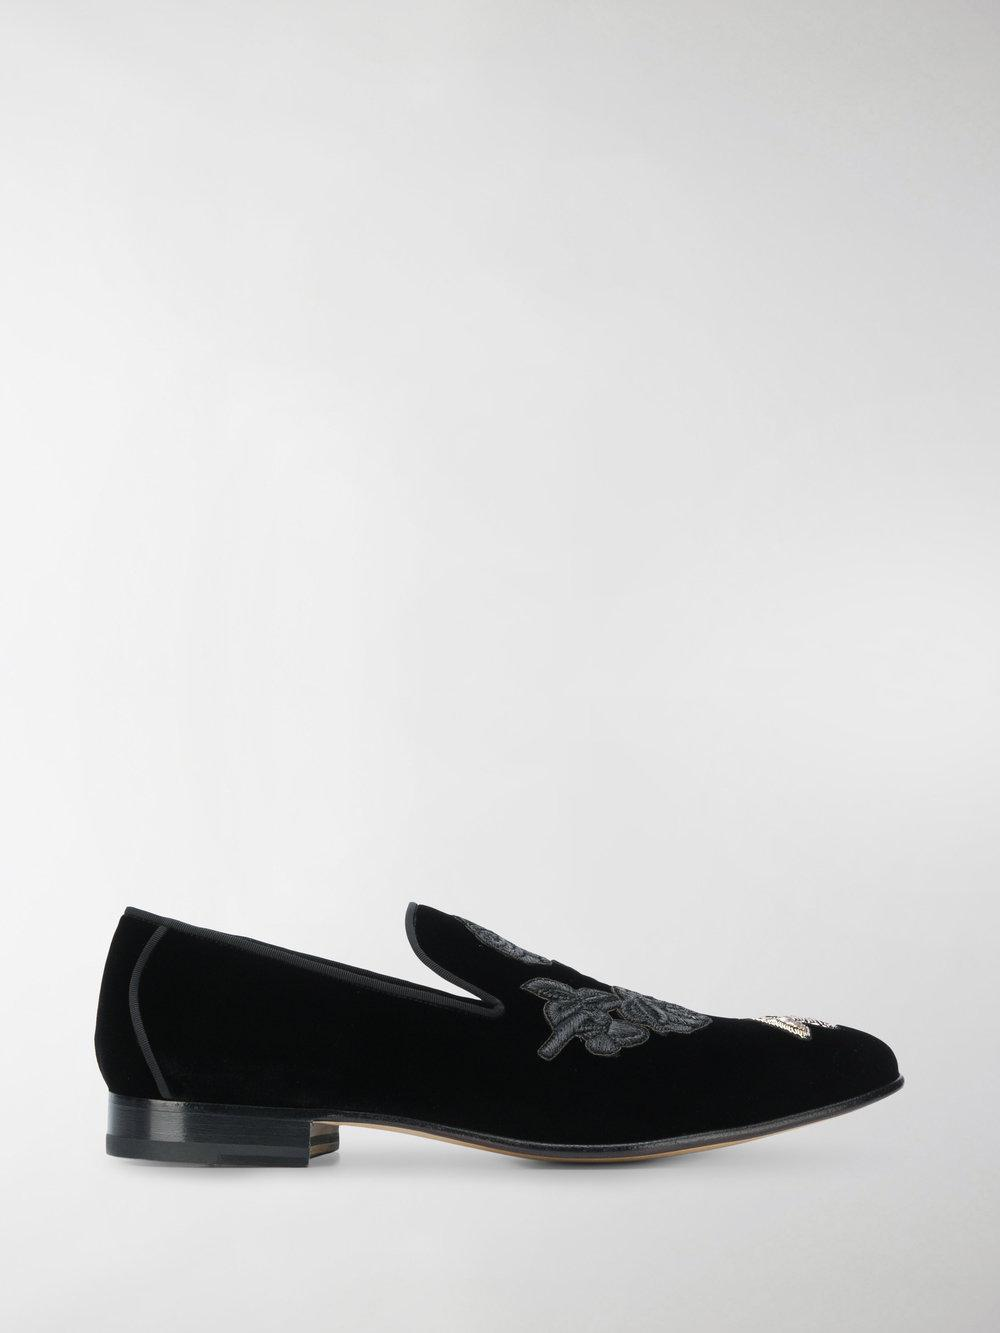 c7fa980ca5c Alexander Mcqueen Embroidered Slippers in Black for Men - Lyst